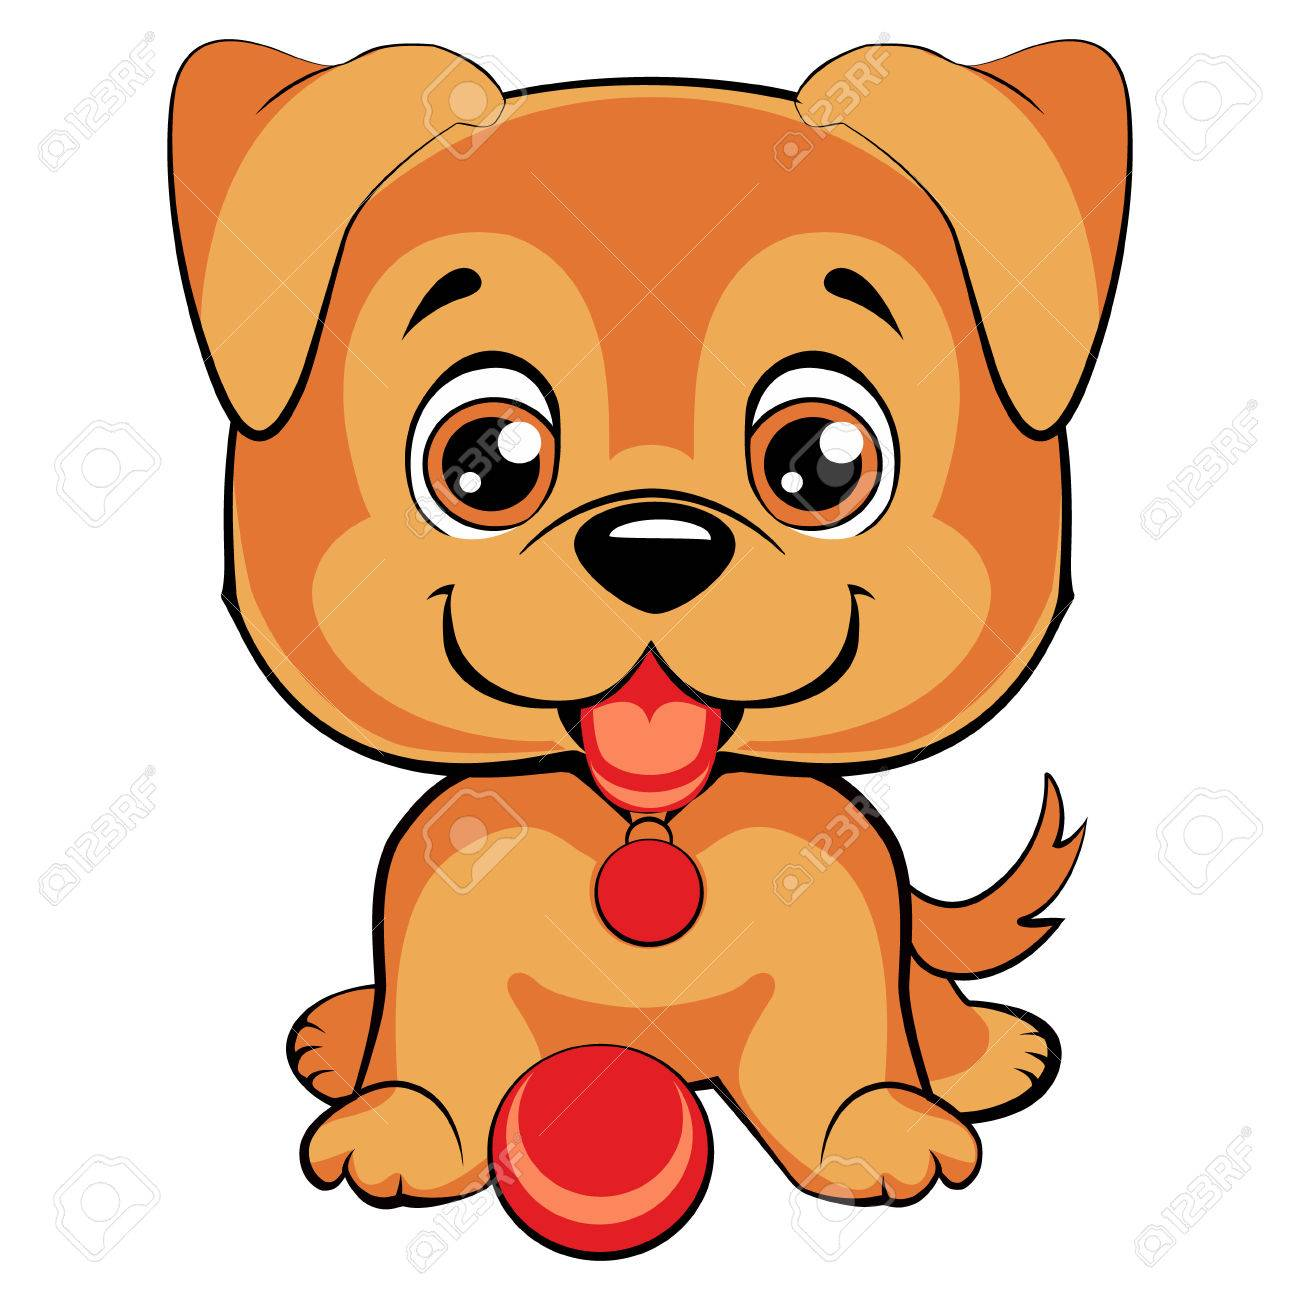 Cute Cartoon Dog Children S Illustration Funny Baby Animal Royalty Free Cliparts Vectors And Stock Illustration Image 75415098